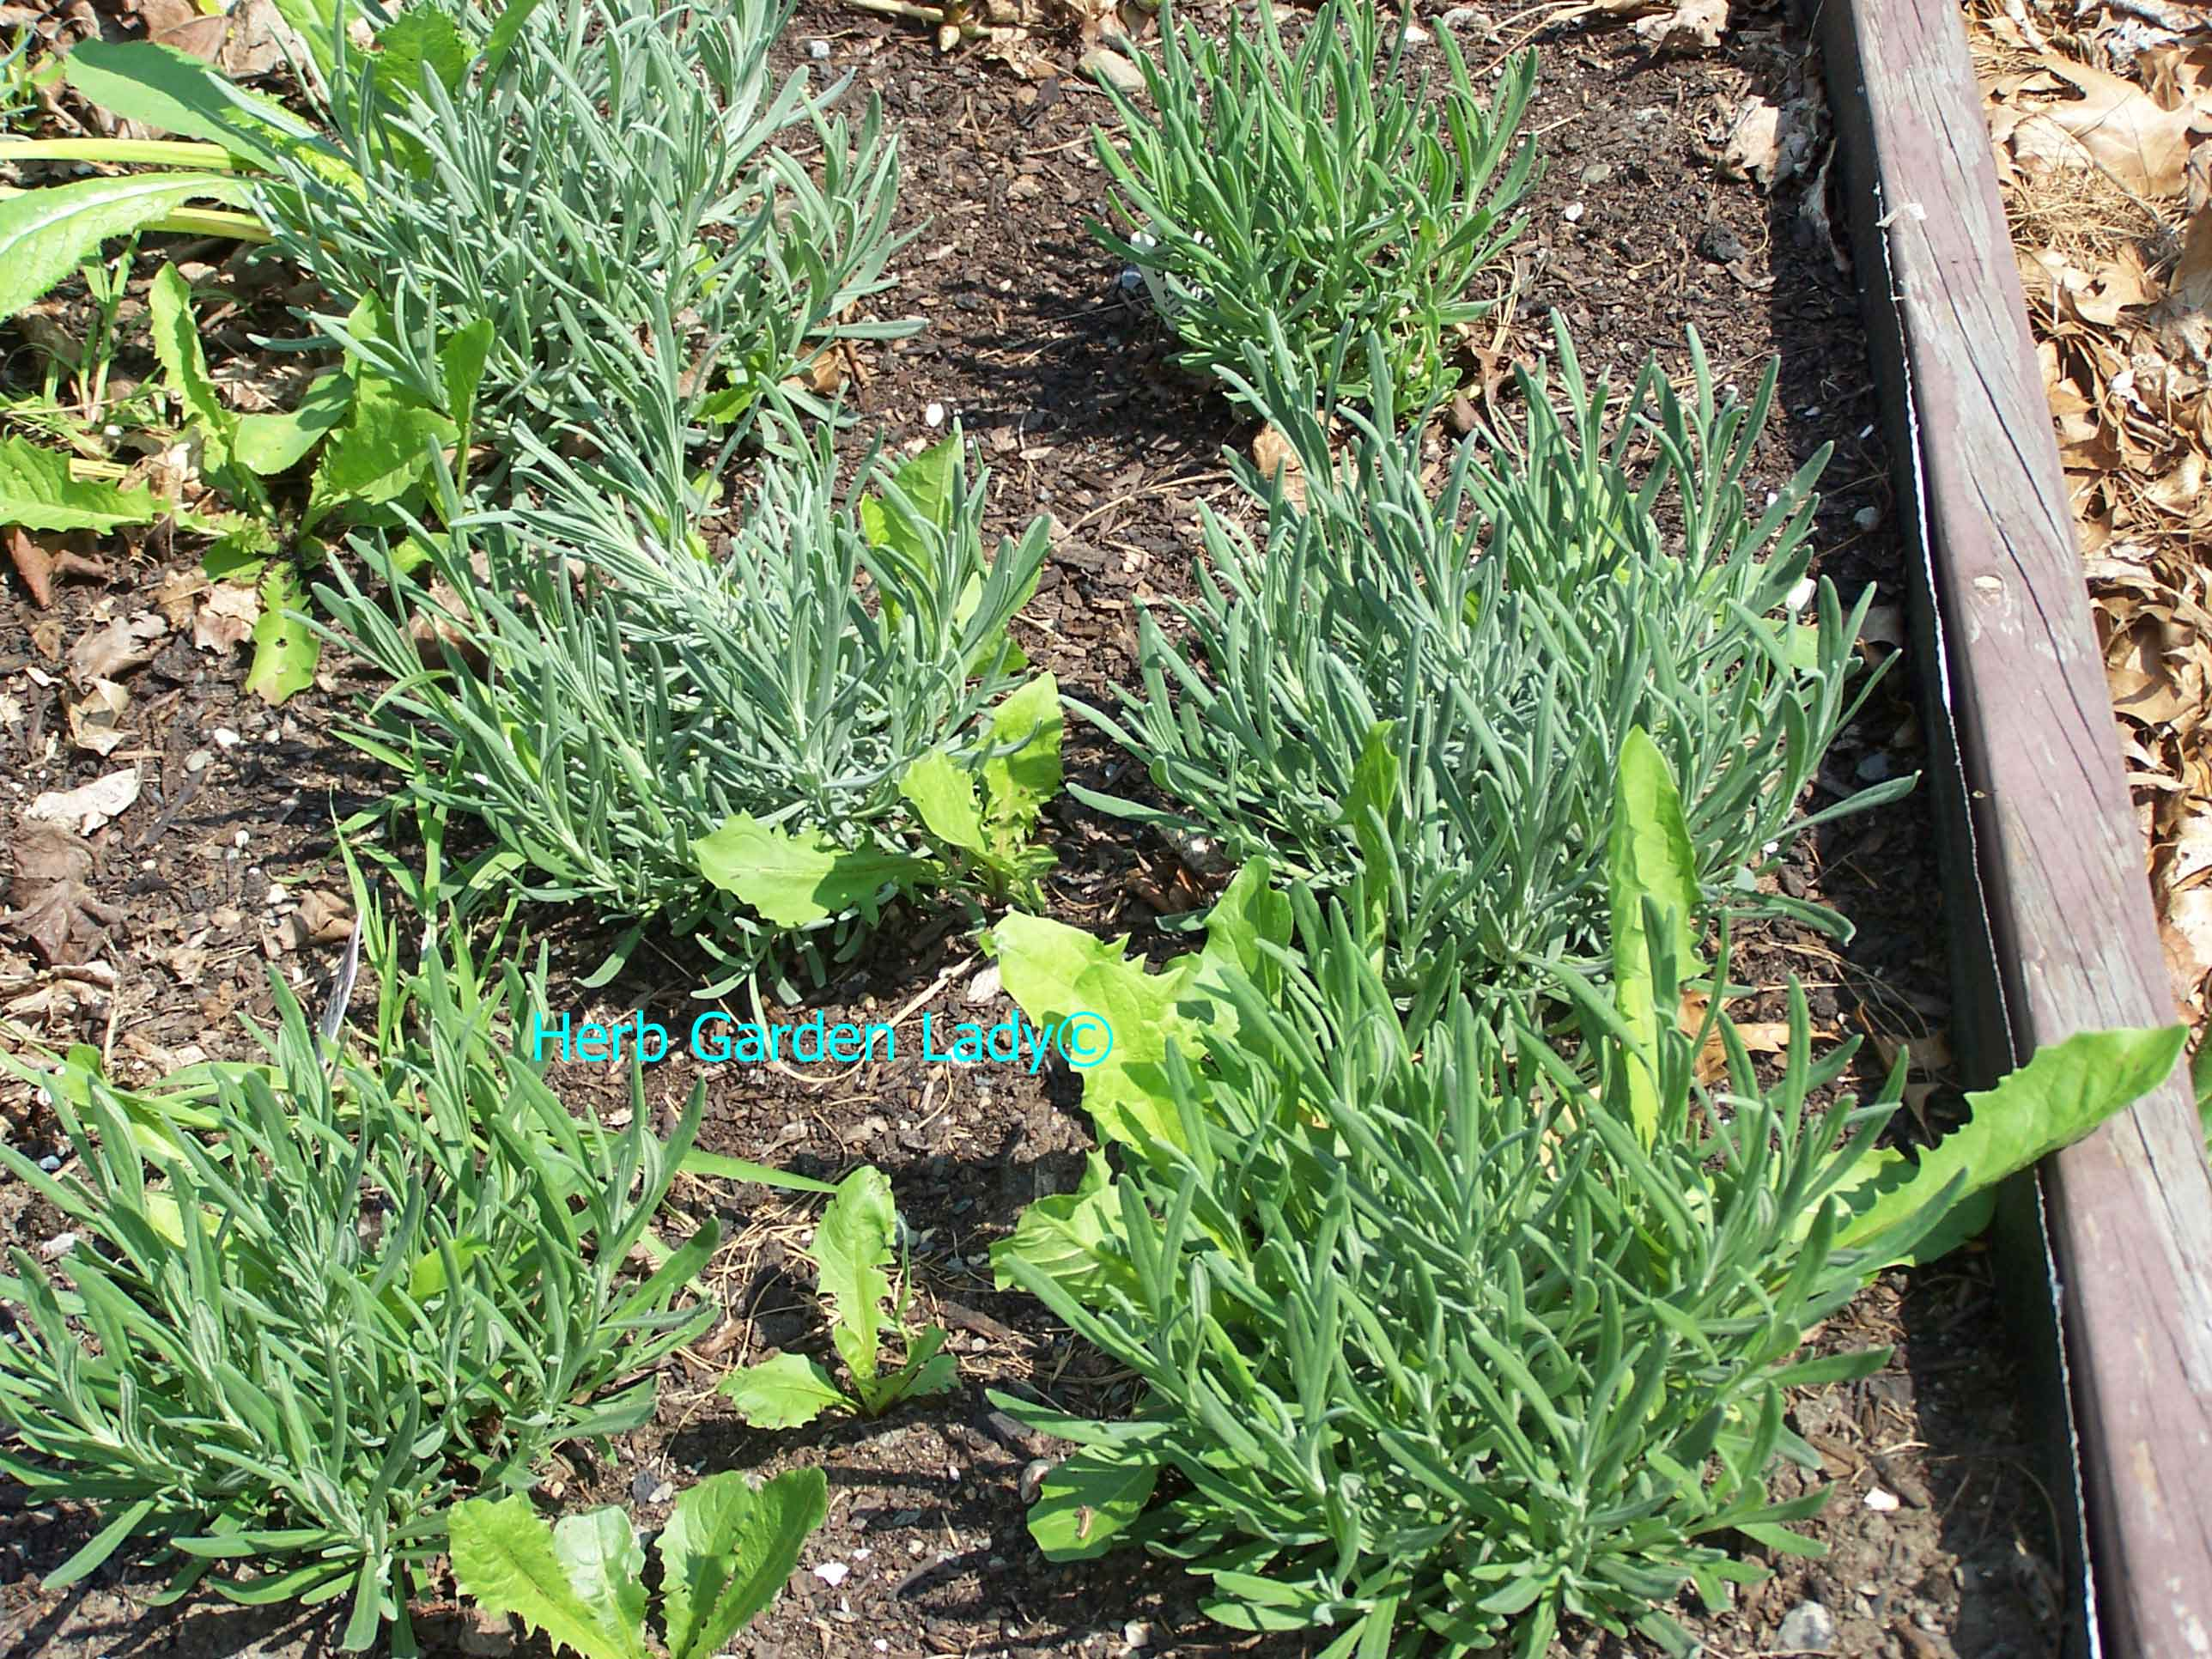 Square Foot Gardening Beds Allow Excellent Drainage Square Foot Gardening    Growing Lavender And Dandelions For Teas